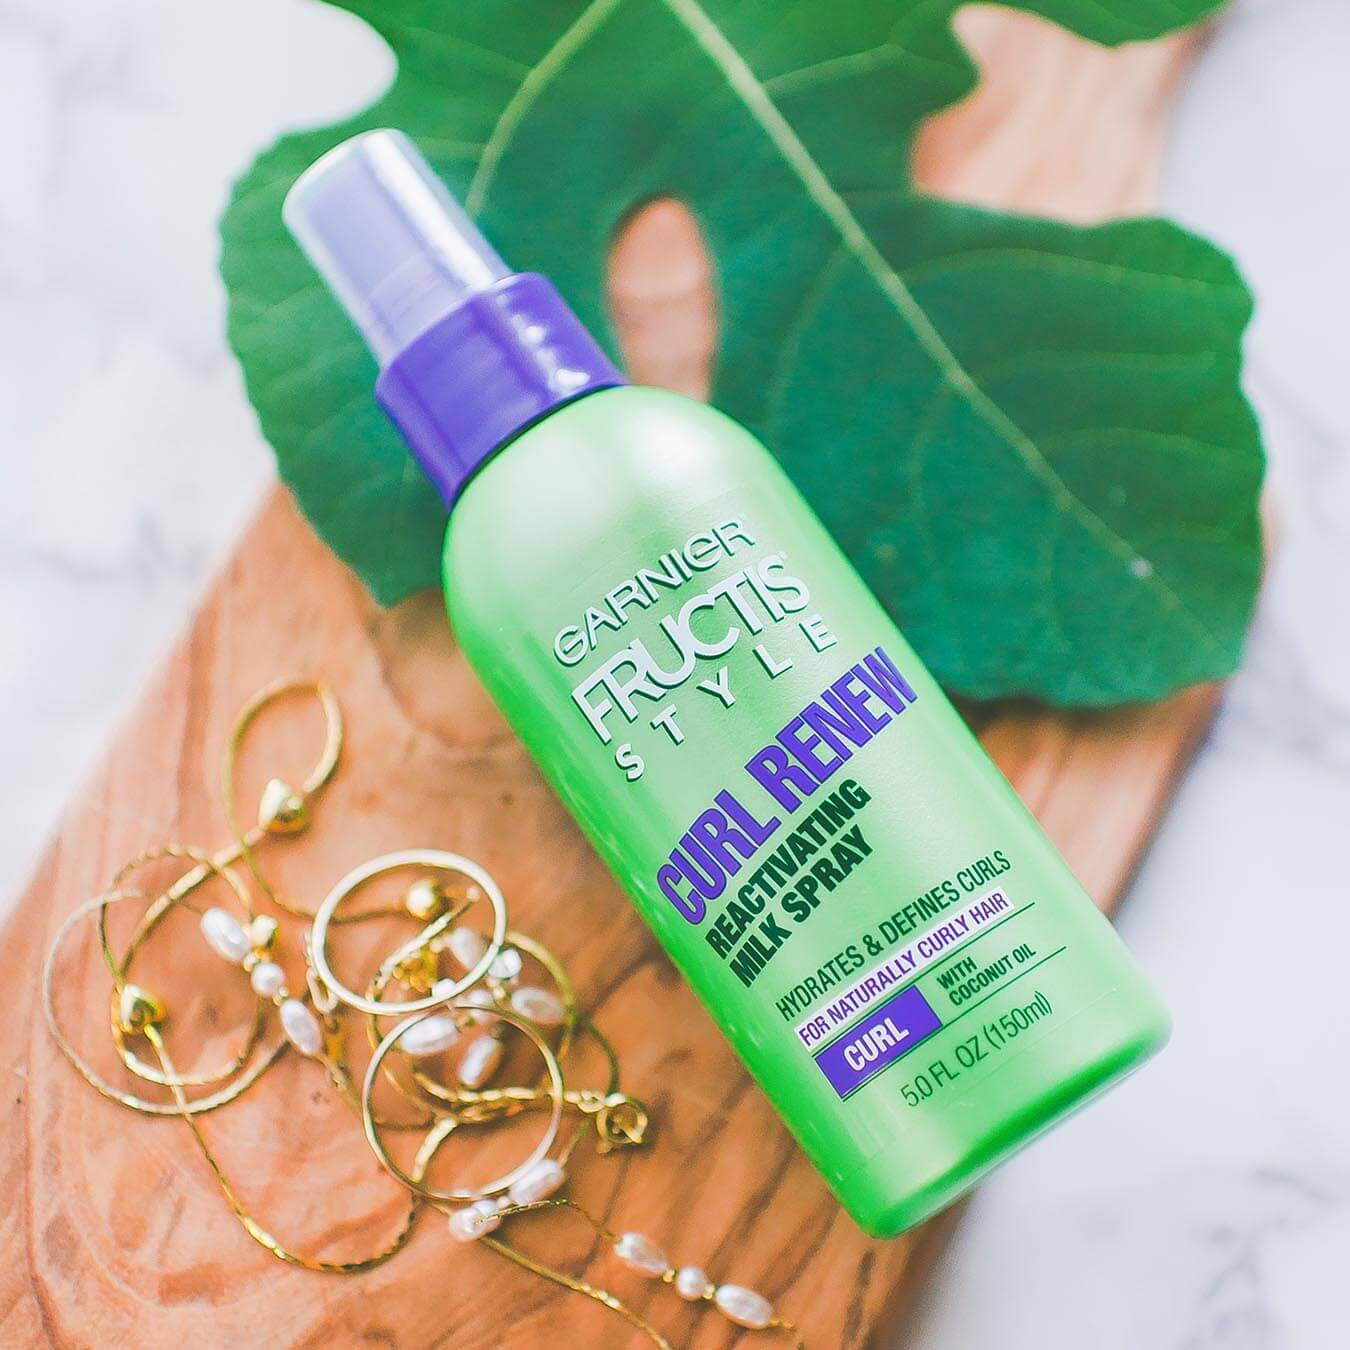 Garnier Fructis Style Curl Renew Reactiving Milk Spray on a wooden oar next to a large sassafras leaf and gold jewelry.